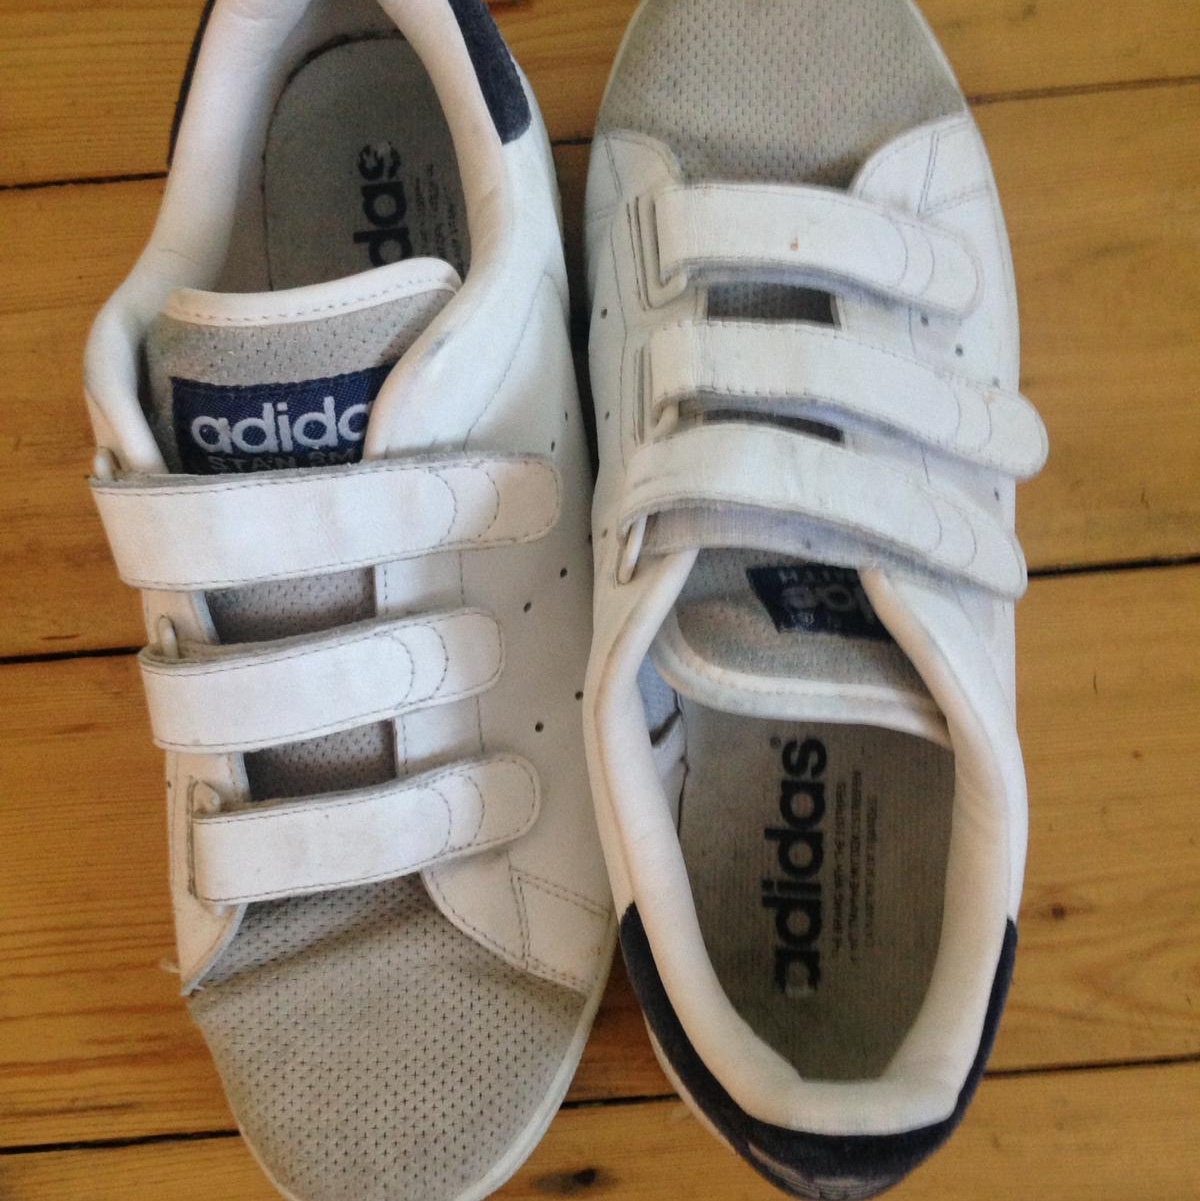 adidas shoes no laces white and navy